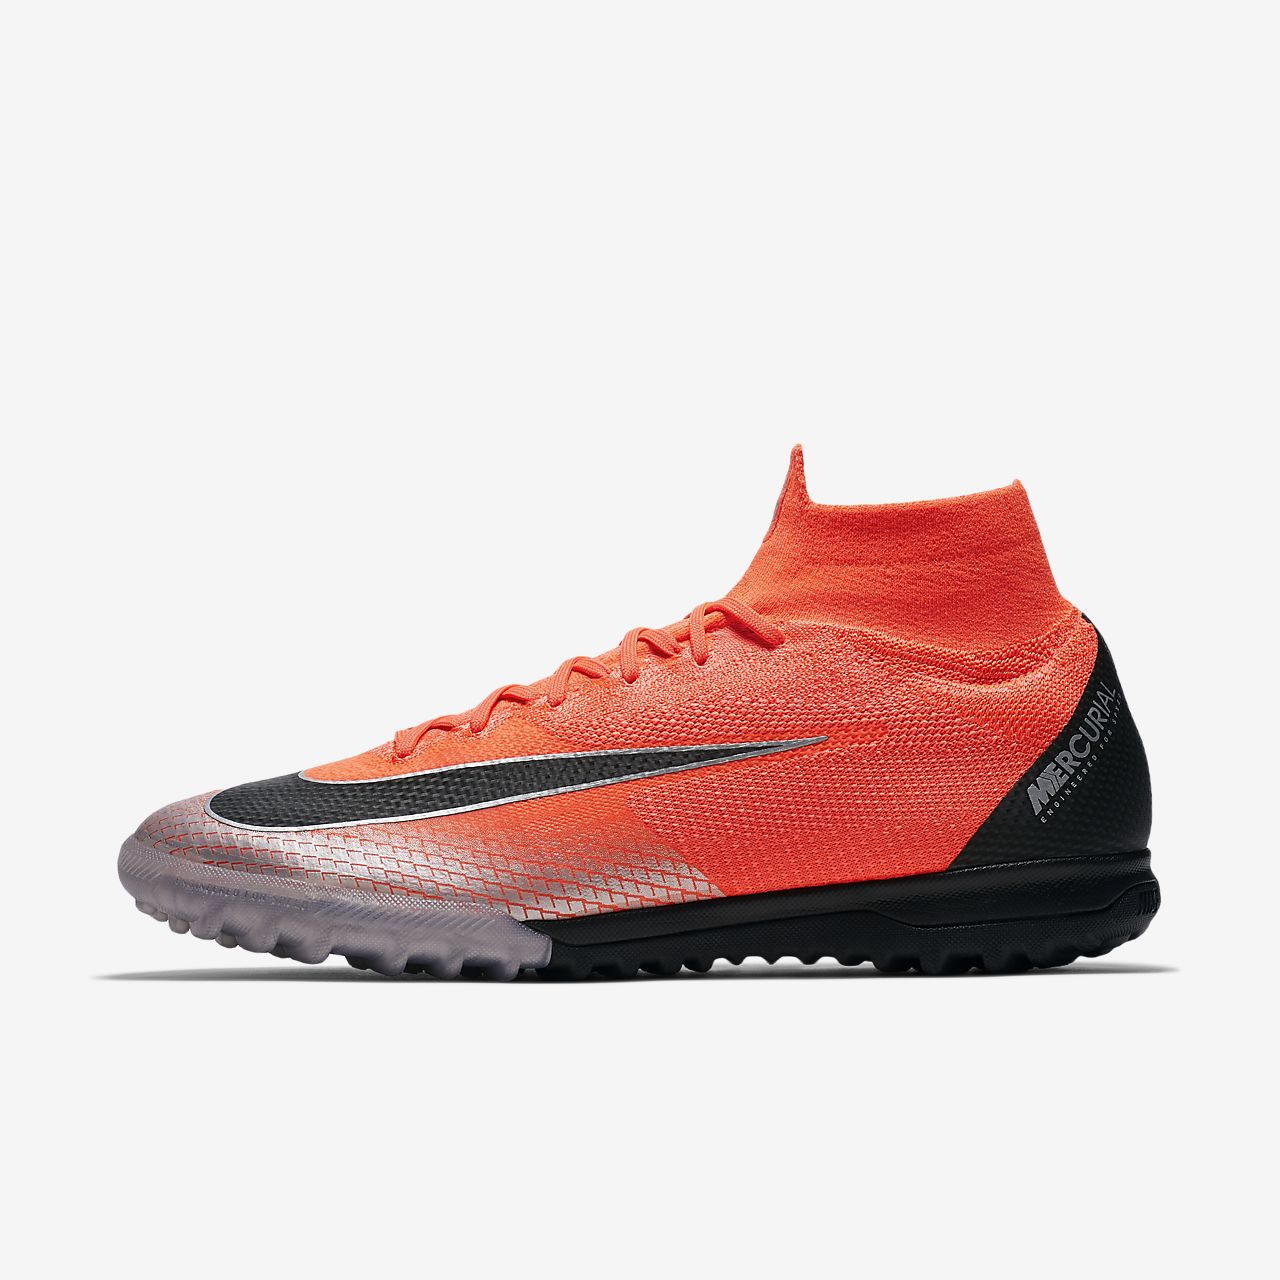 6575ceabcaa5 Nike MercurialX Superfly 360 Elite CR7 TF Turf Football Shoe. Nike ...